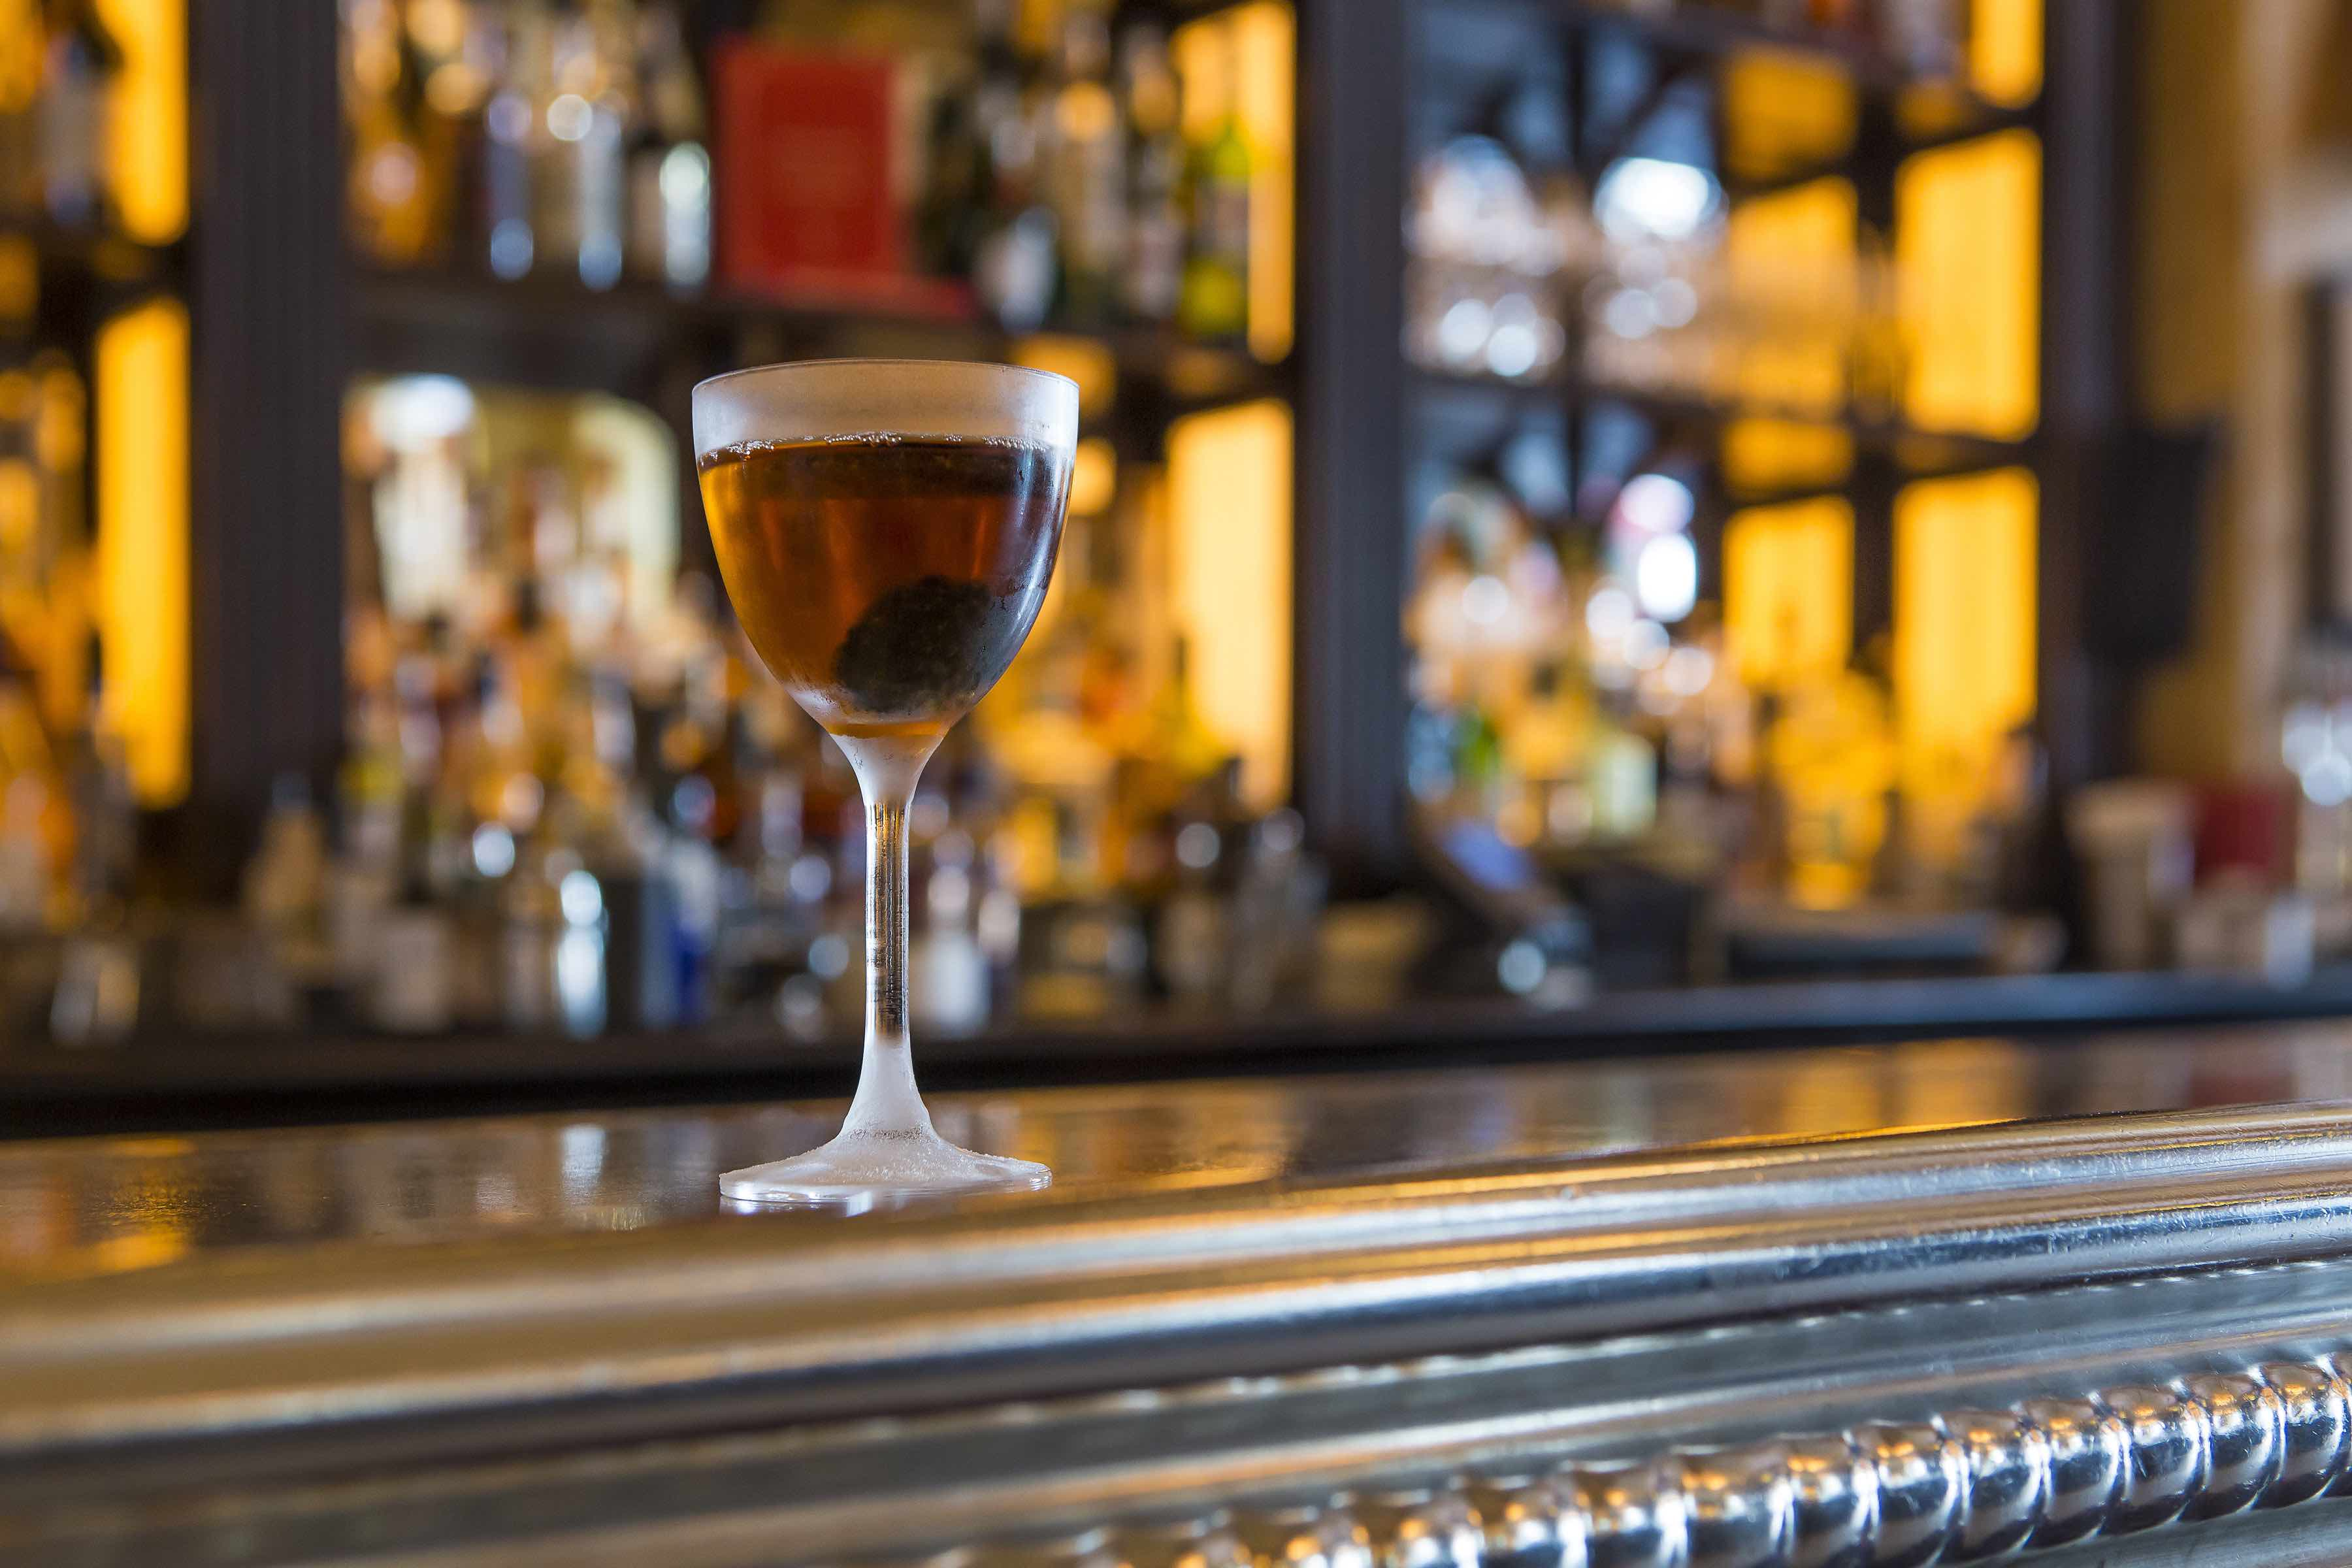 whisky bars in London, where to drink whisky in London, best whisky bars in London, whisky bars london